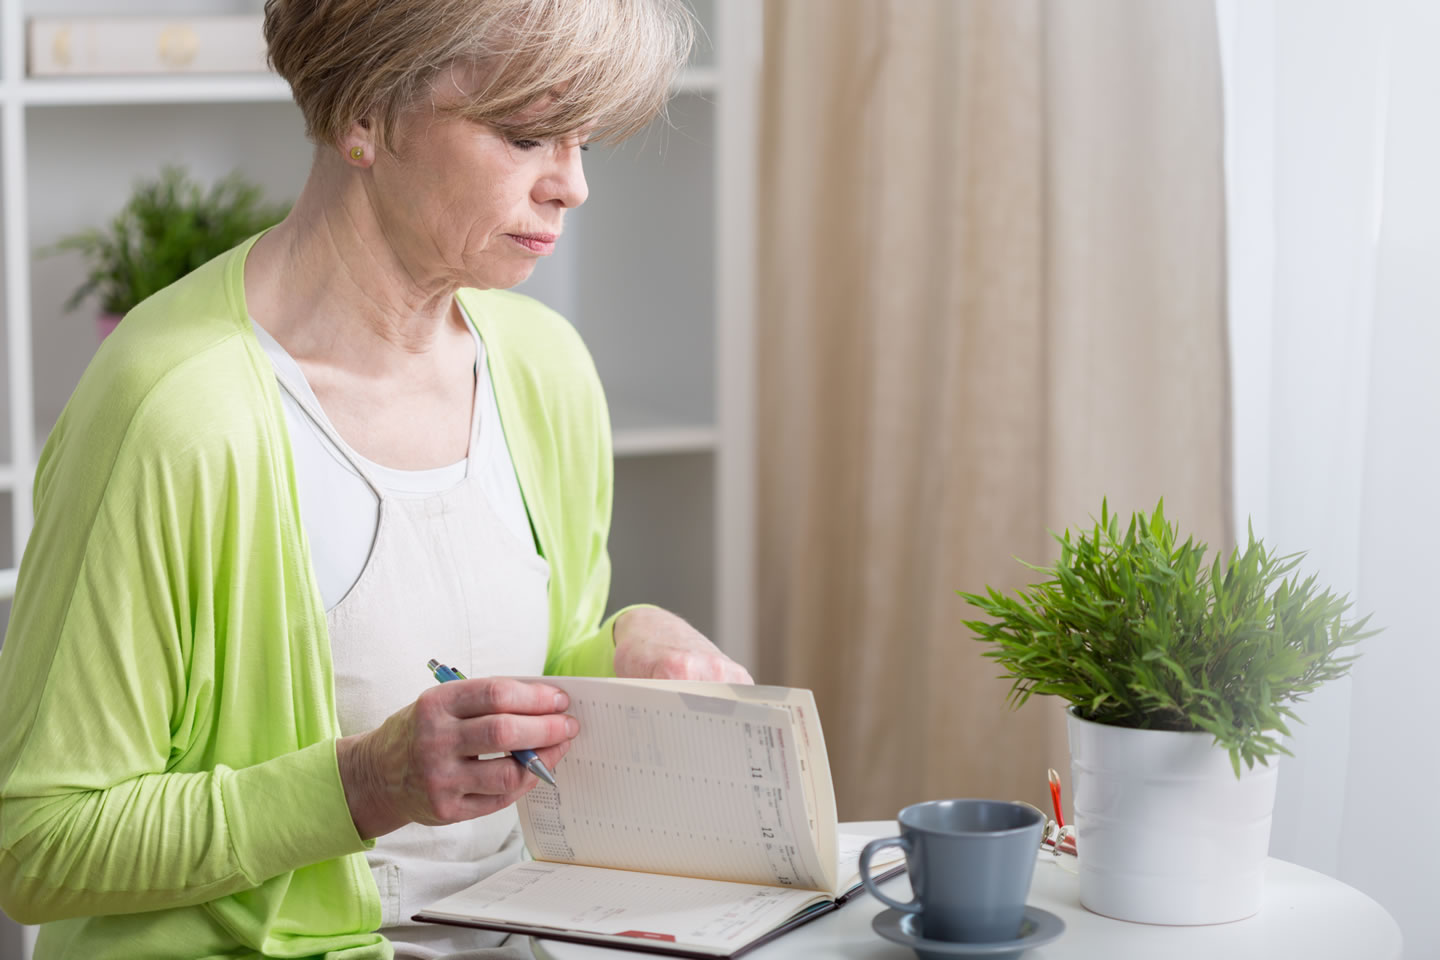 Woman looking at calender, Shutterstock-web